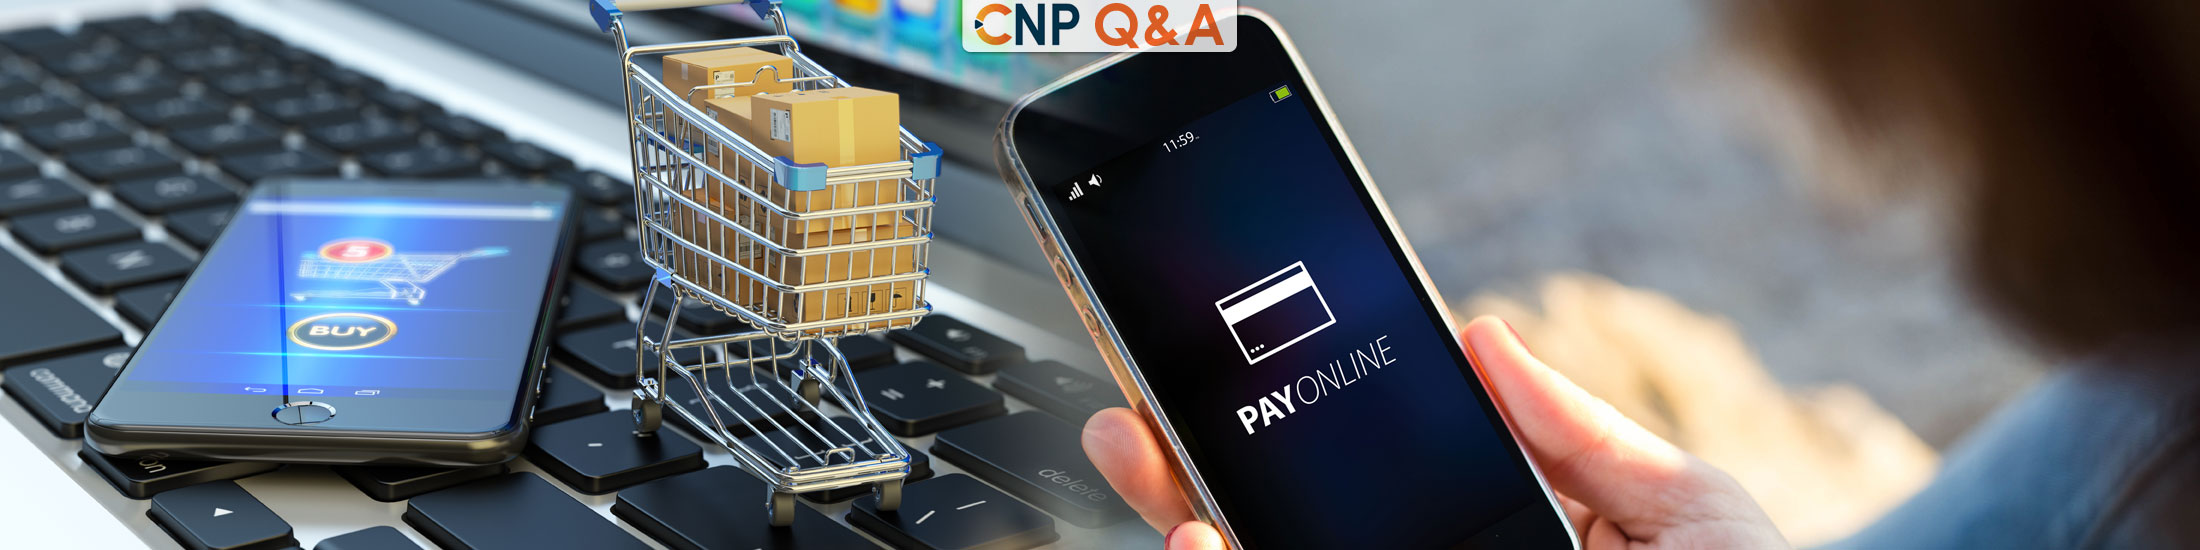 CNP Q&A: Why Alternative Payments Are Surging in the Age of Covid-19